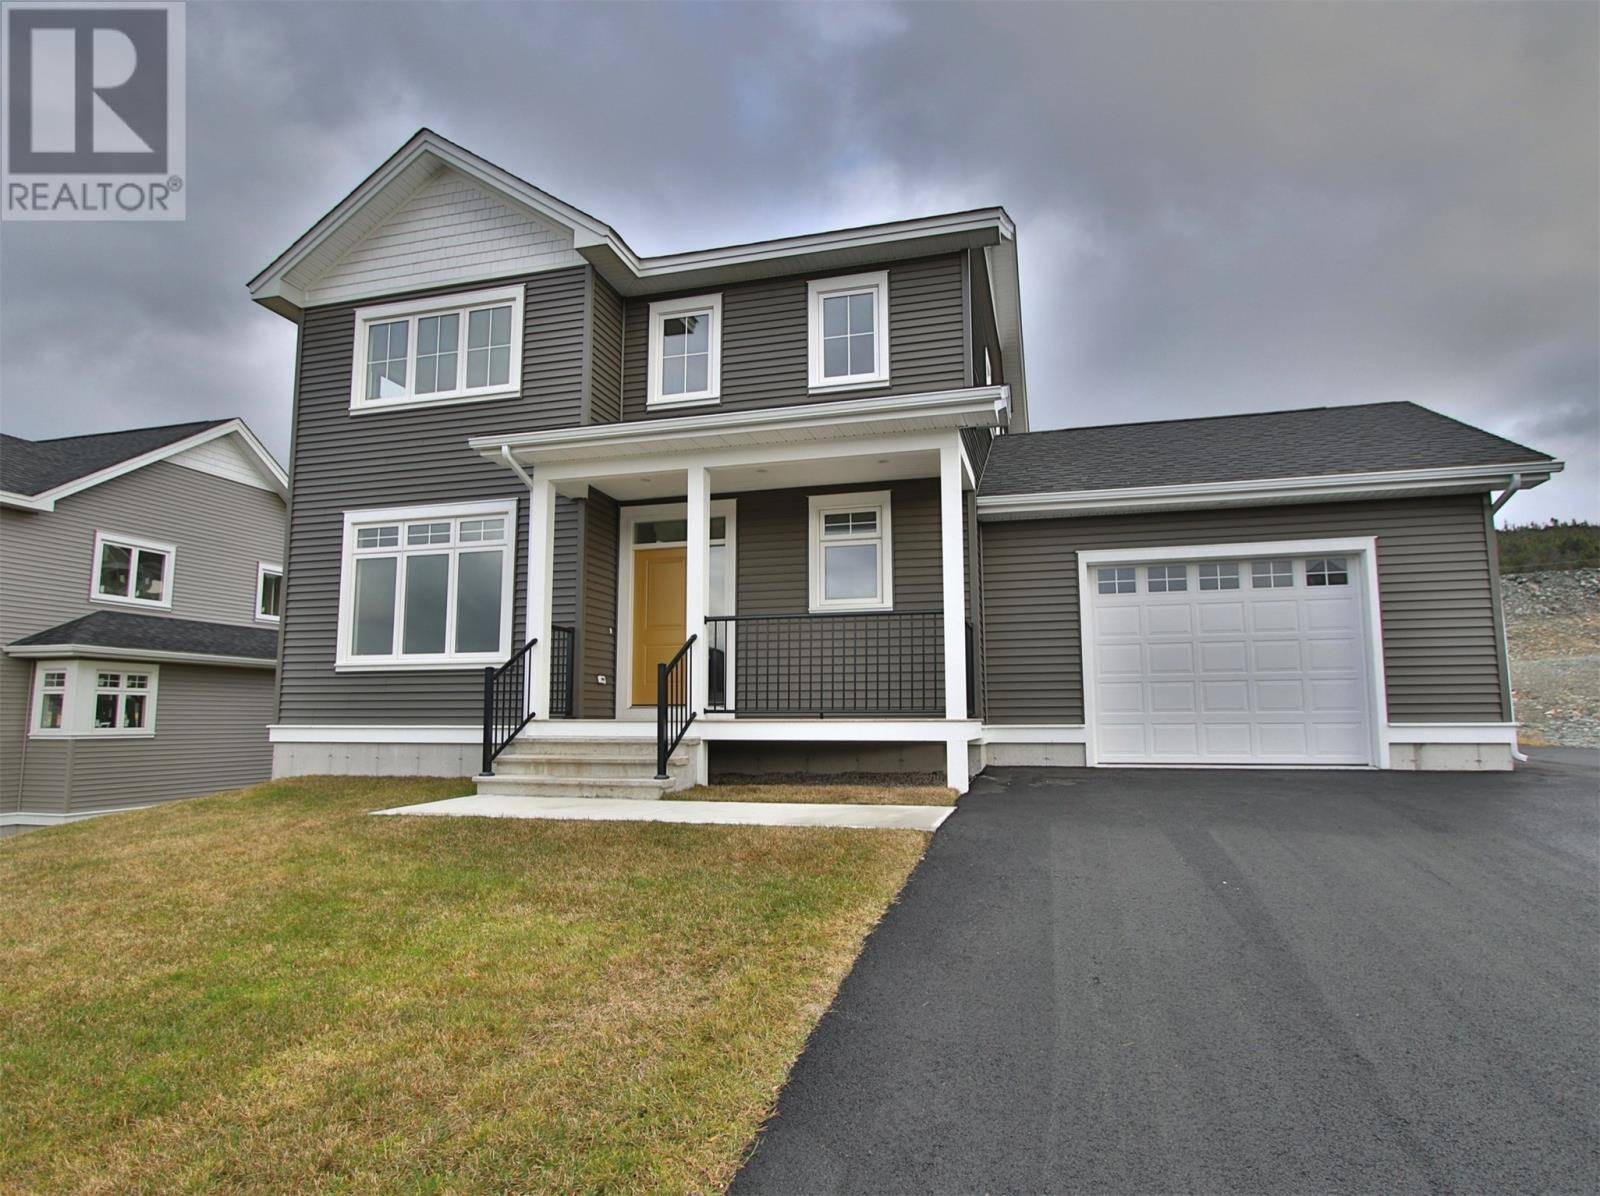 House for sale at 5 Midnight Cove St. Philips Newfoundland - MLS: 1200750